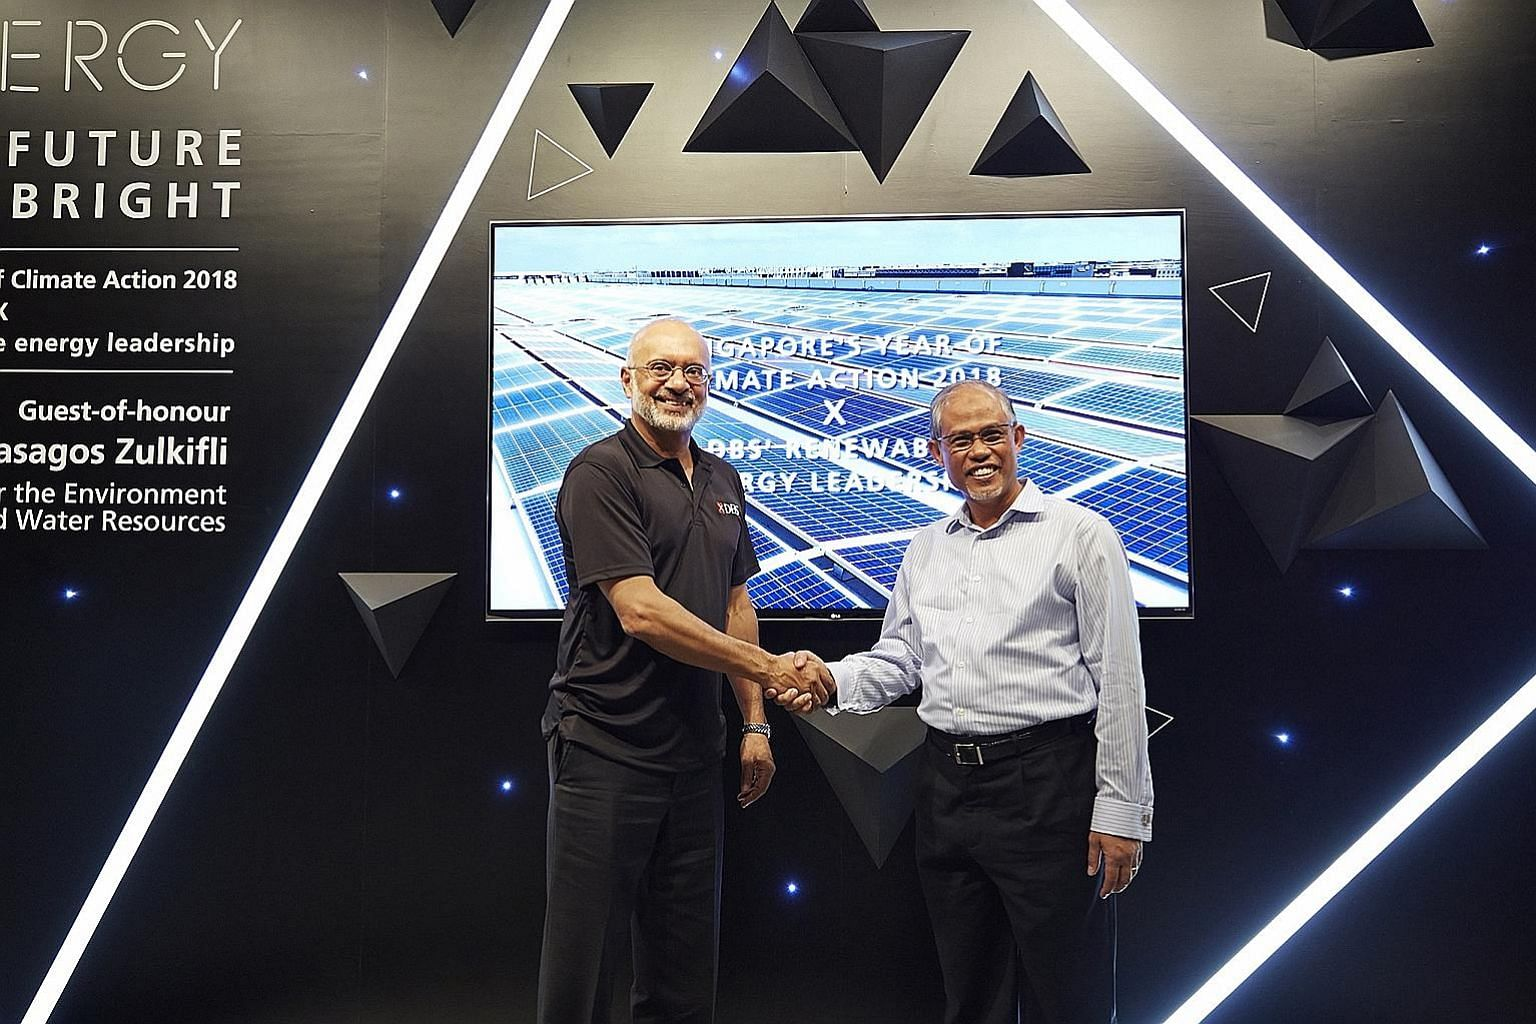 DBS chief executive Piyush Gupta (left) and Minister for the Environment and Water Resources Masagos Zulkifli at the launch of a solar energy installation at DBS Asia Hub yesterday.